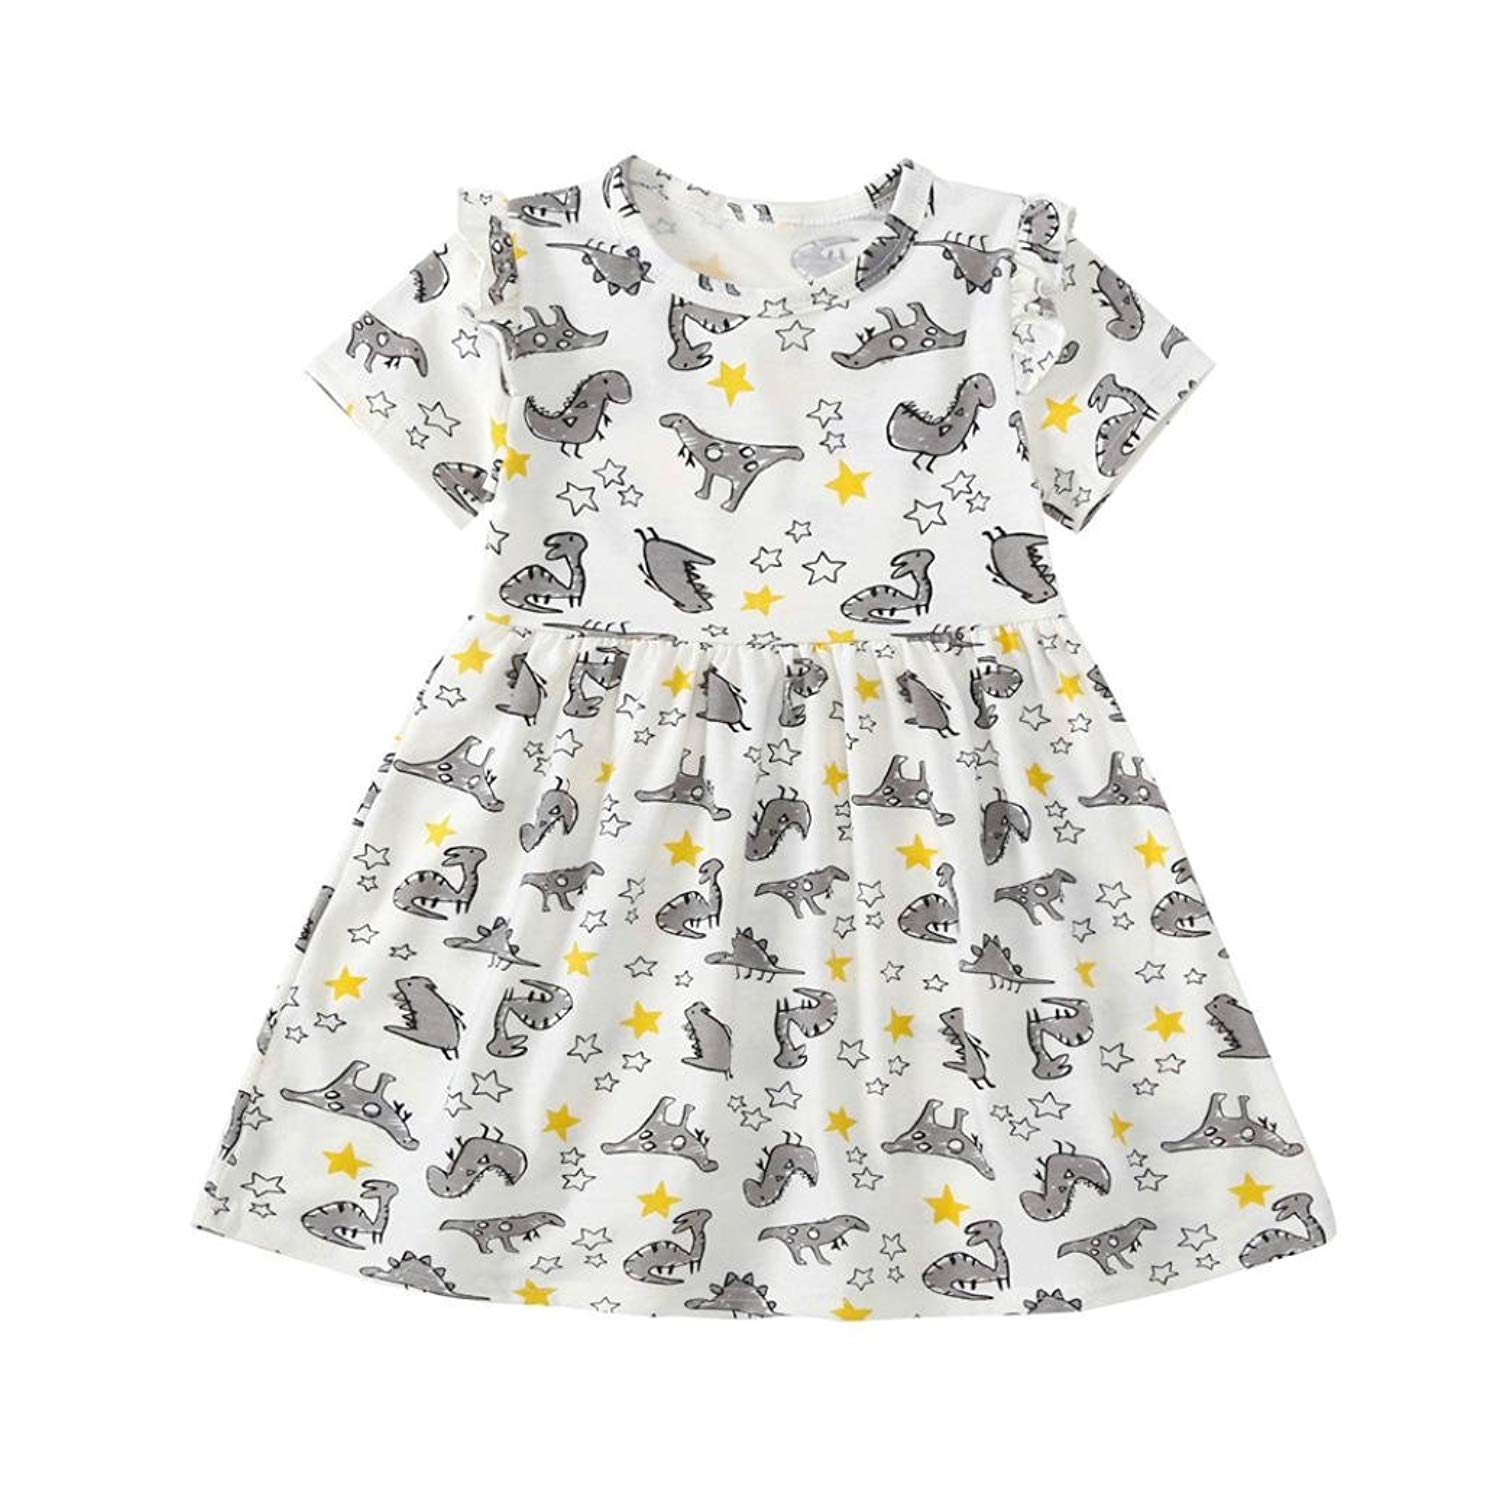 e19293124595 Hibro Toddler Baby Girls Cute Dinosaur Printing Dress Infant Kids Sundress  Casual Dresses Summer Outfit Clothes